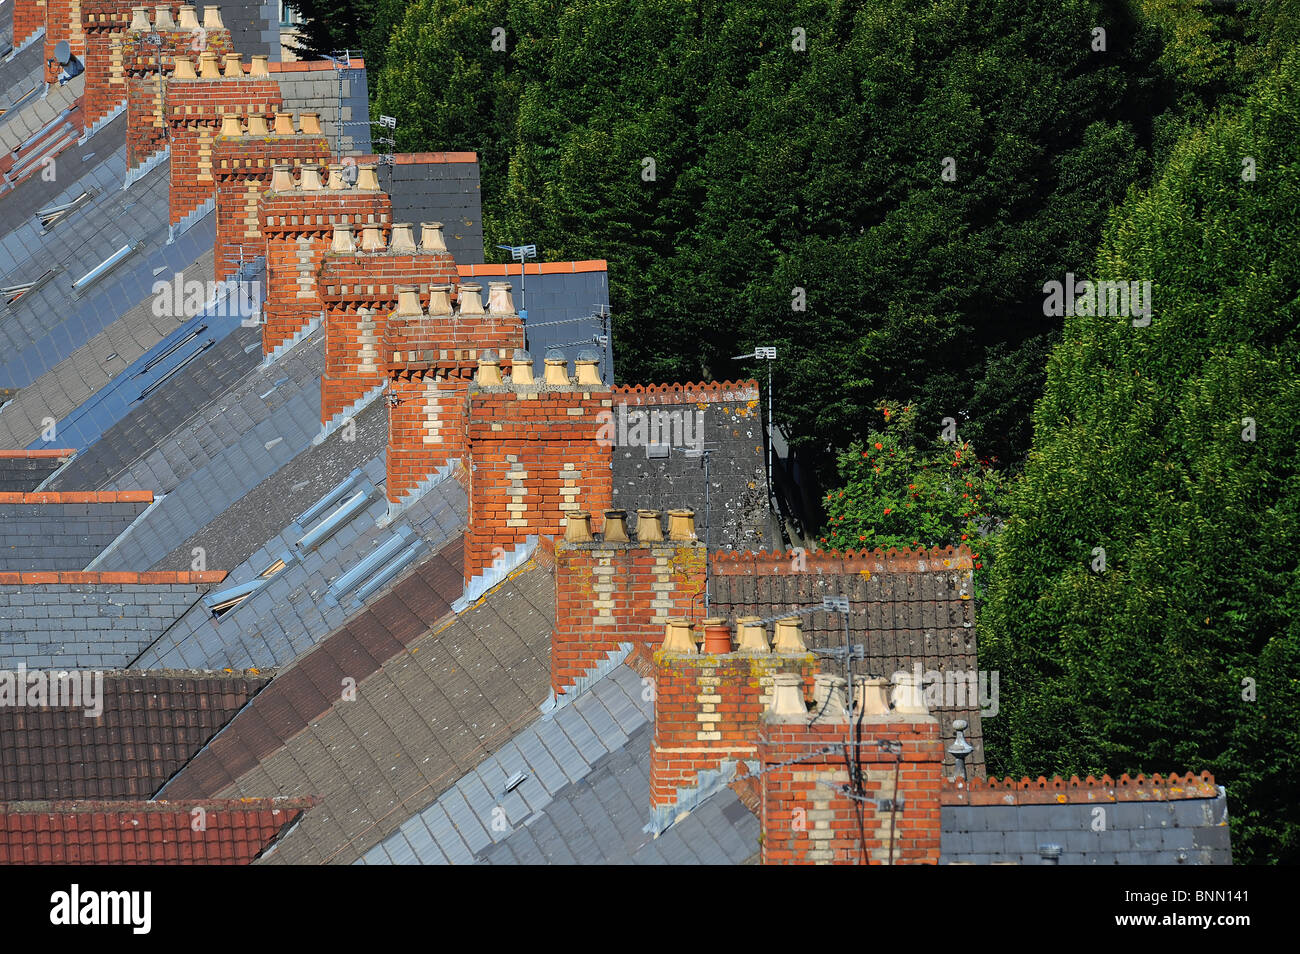 A row of chimneys on rooftops of terraced housing in Cardiff. - Stock Image